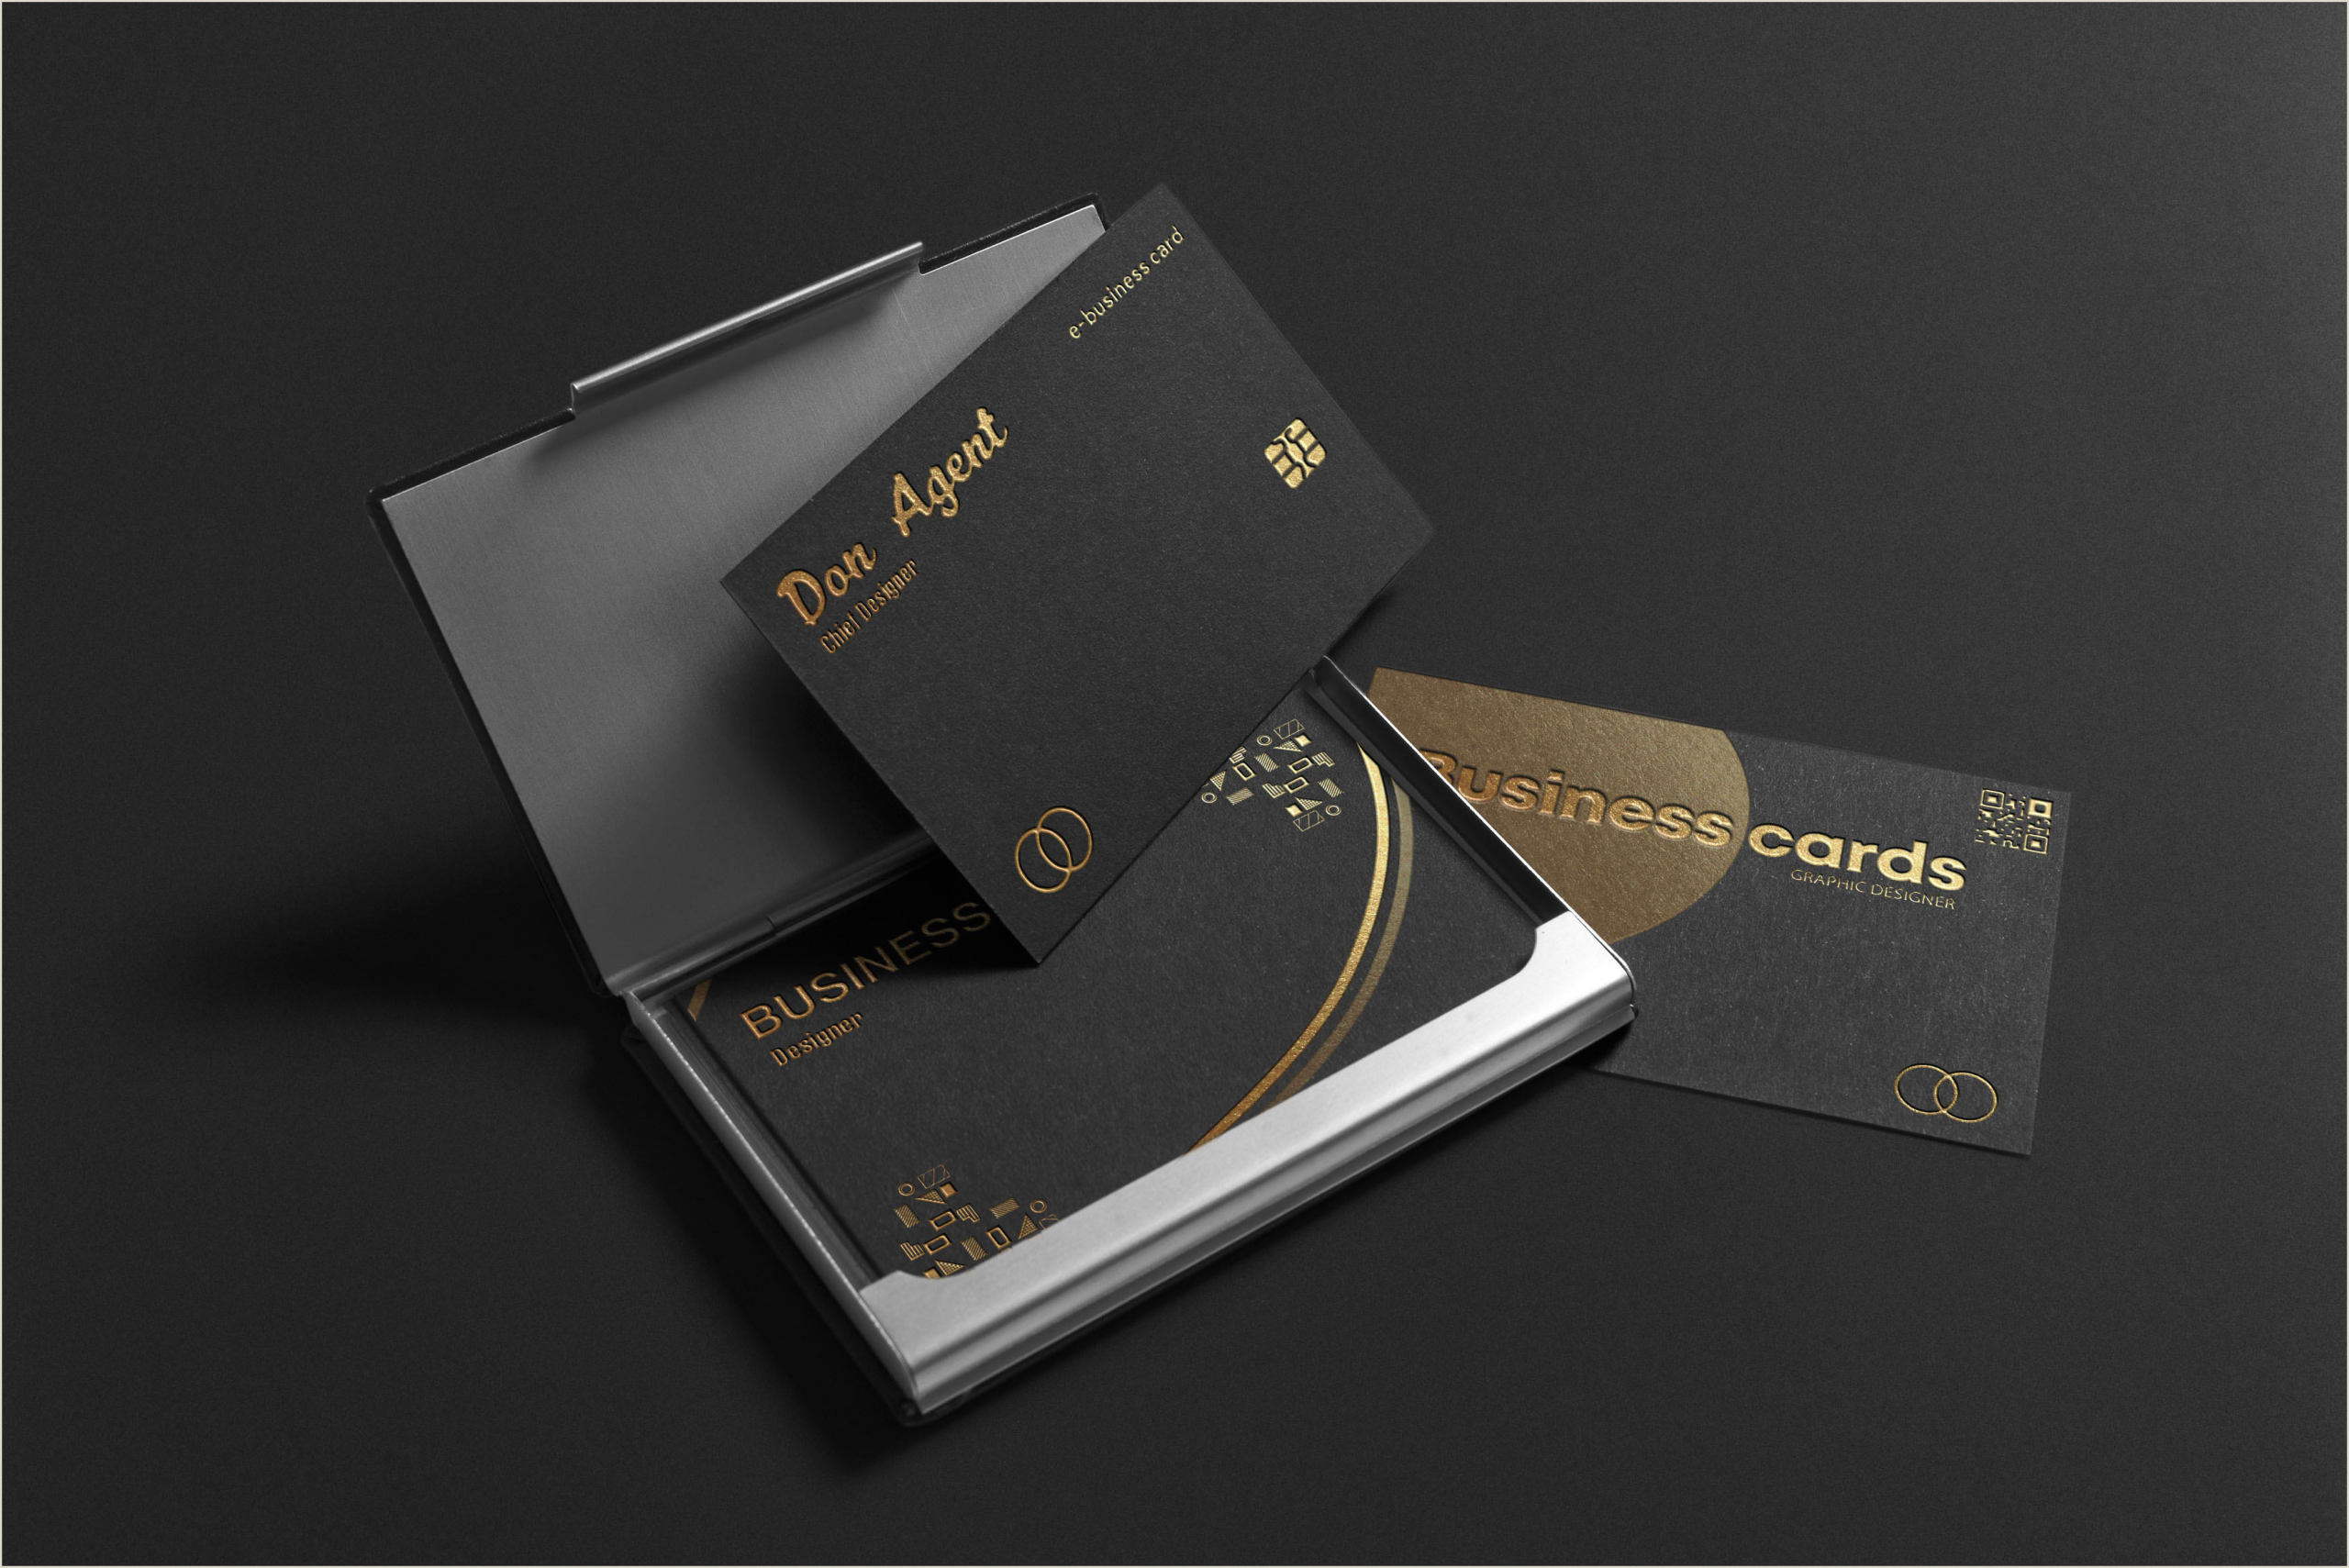 How To Make Buisness Cards Design Professional Business Card In 12 Hours